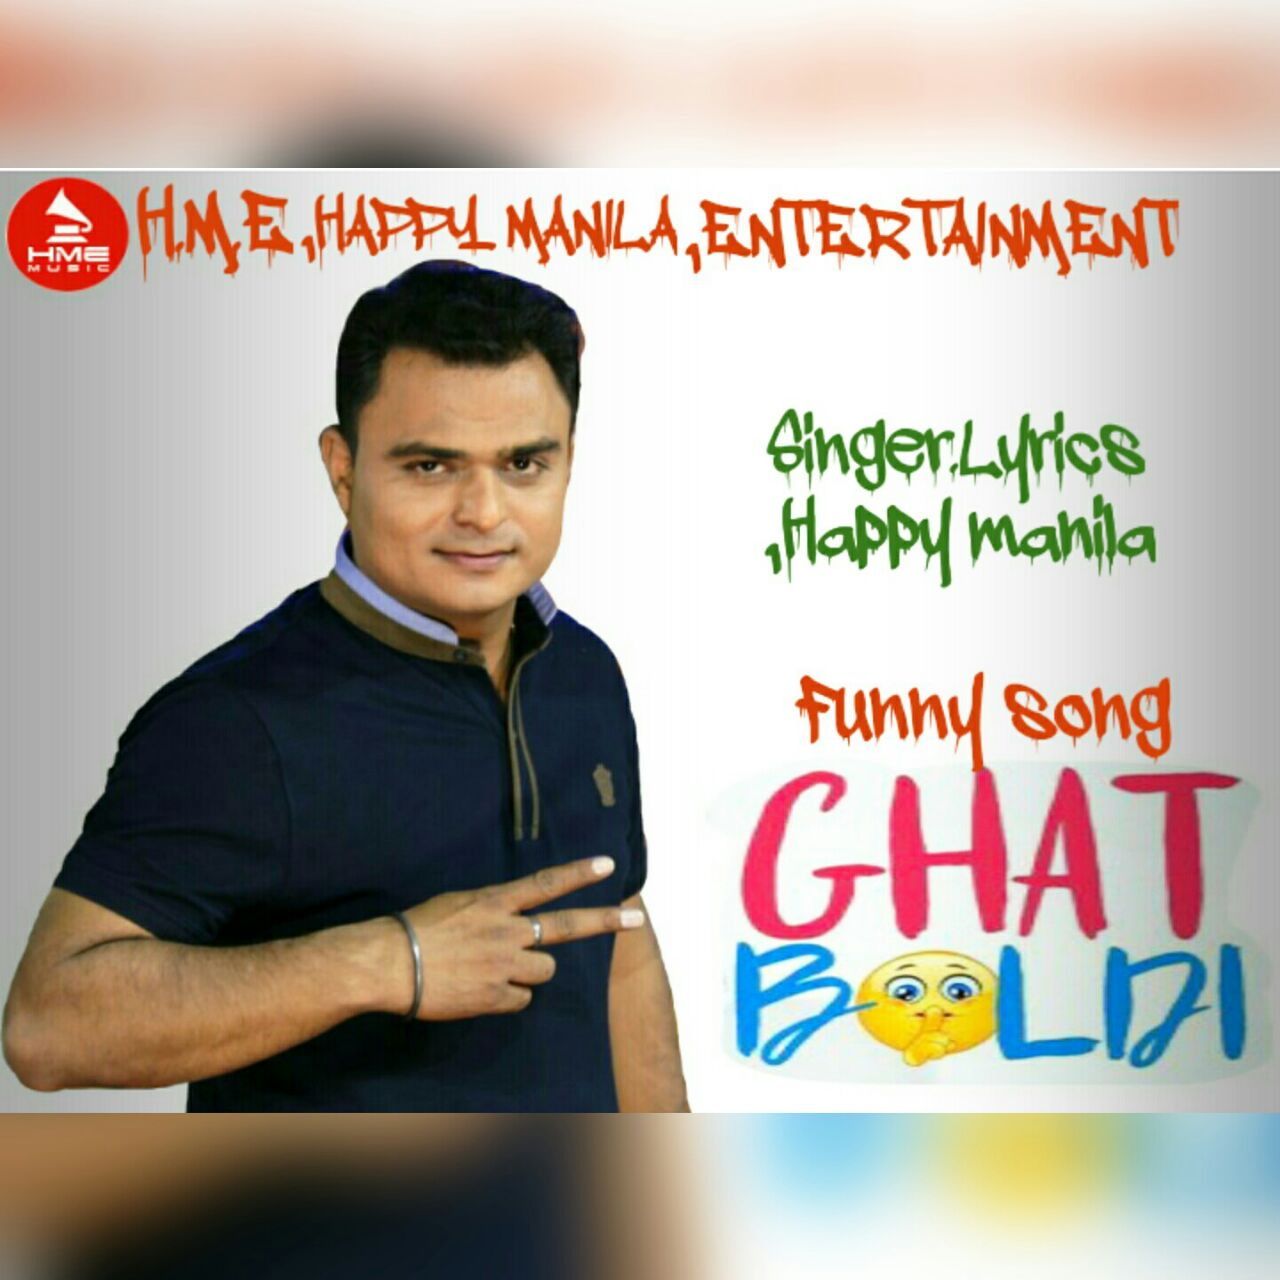 Ghat Boldi Funny Song